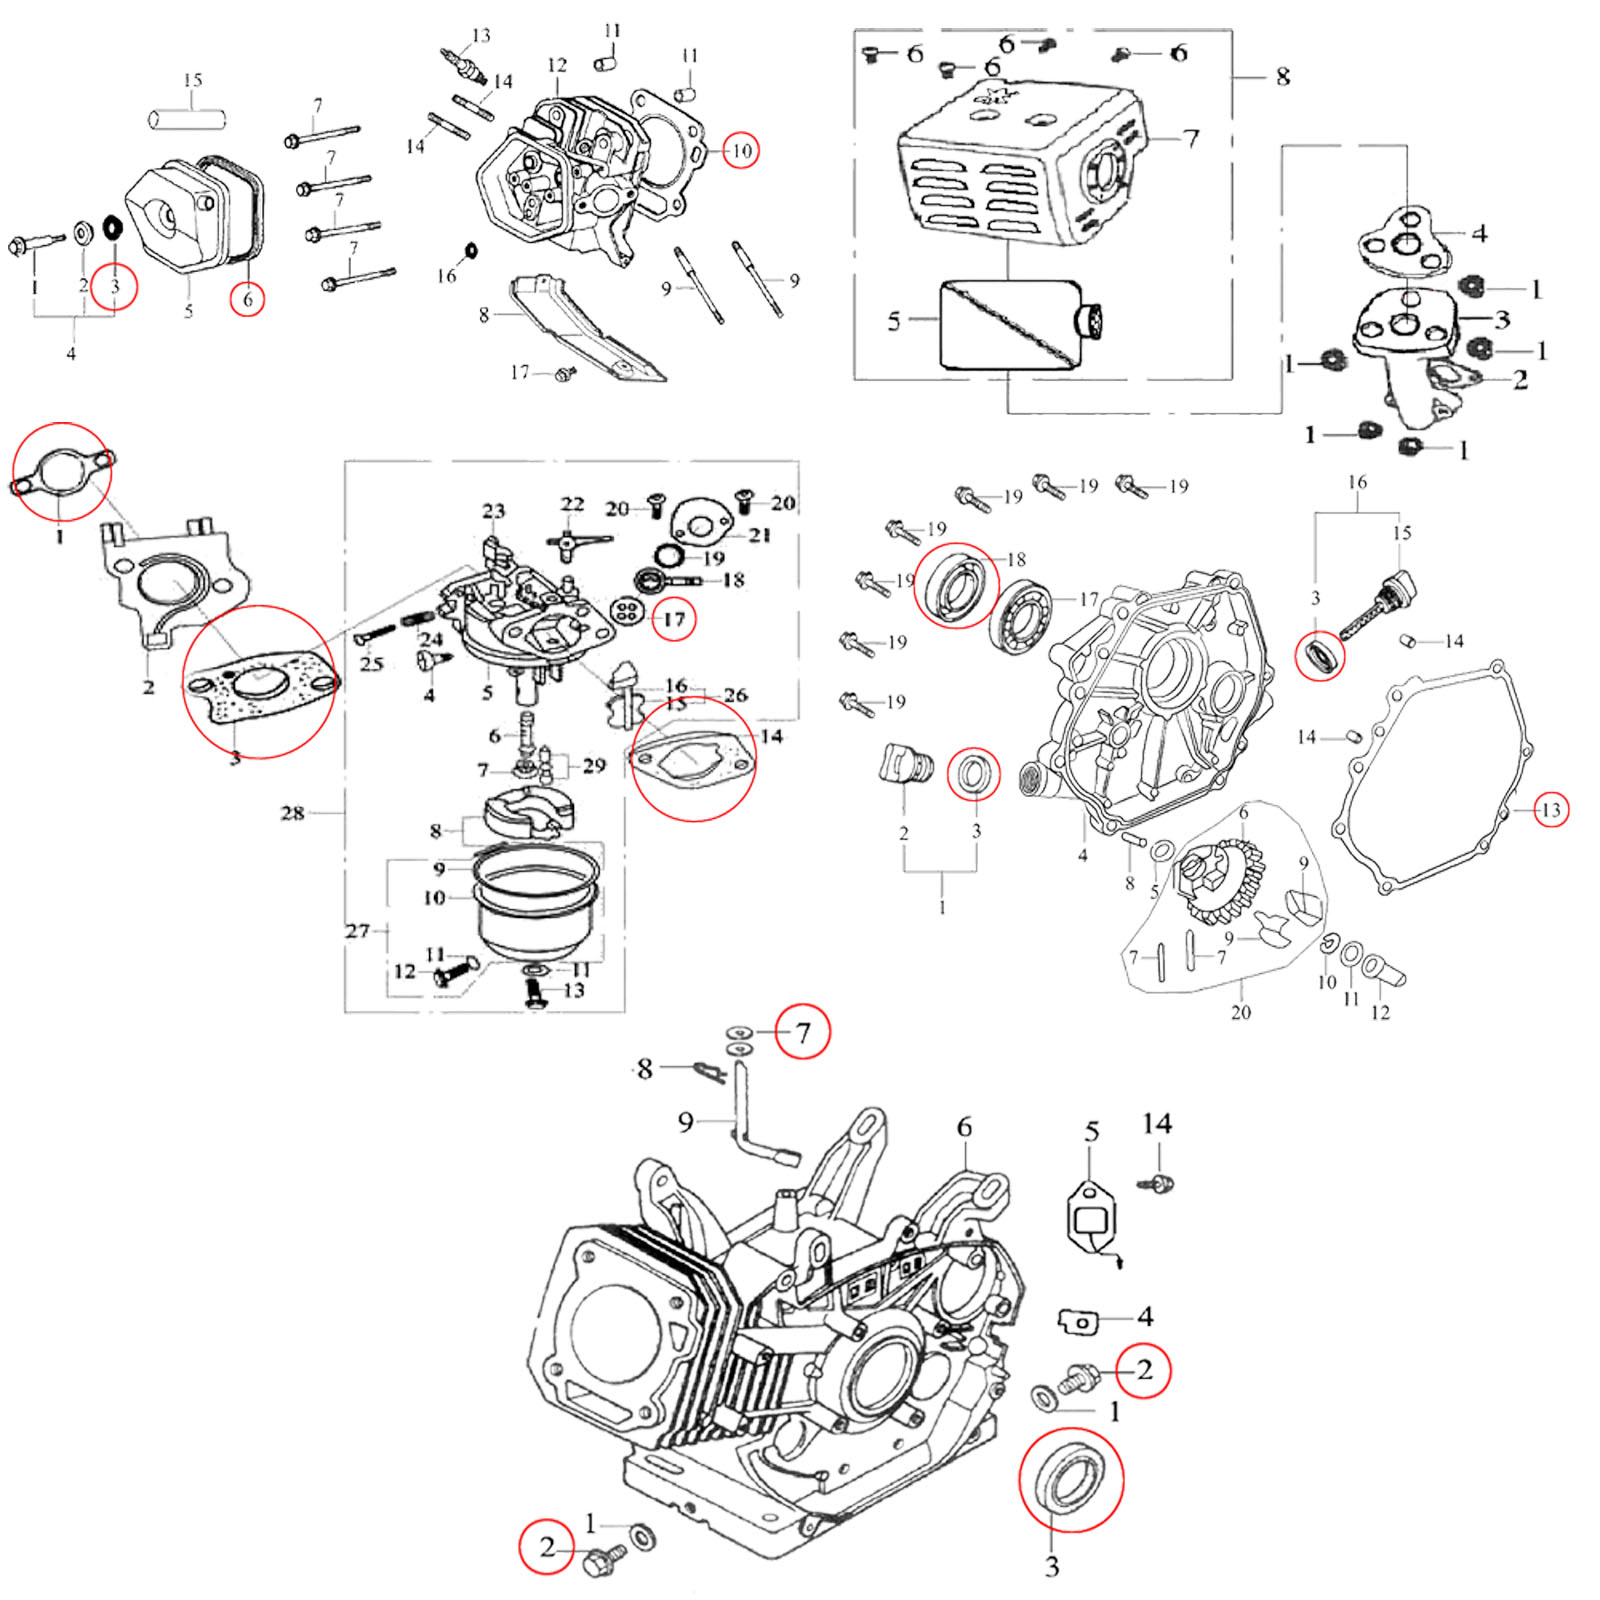 Gasoline Engine Cylinder Head Diagram on lifan engine wiring diagram